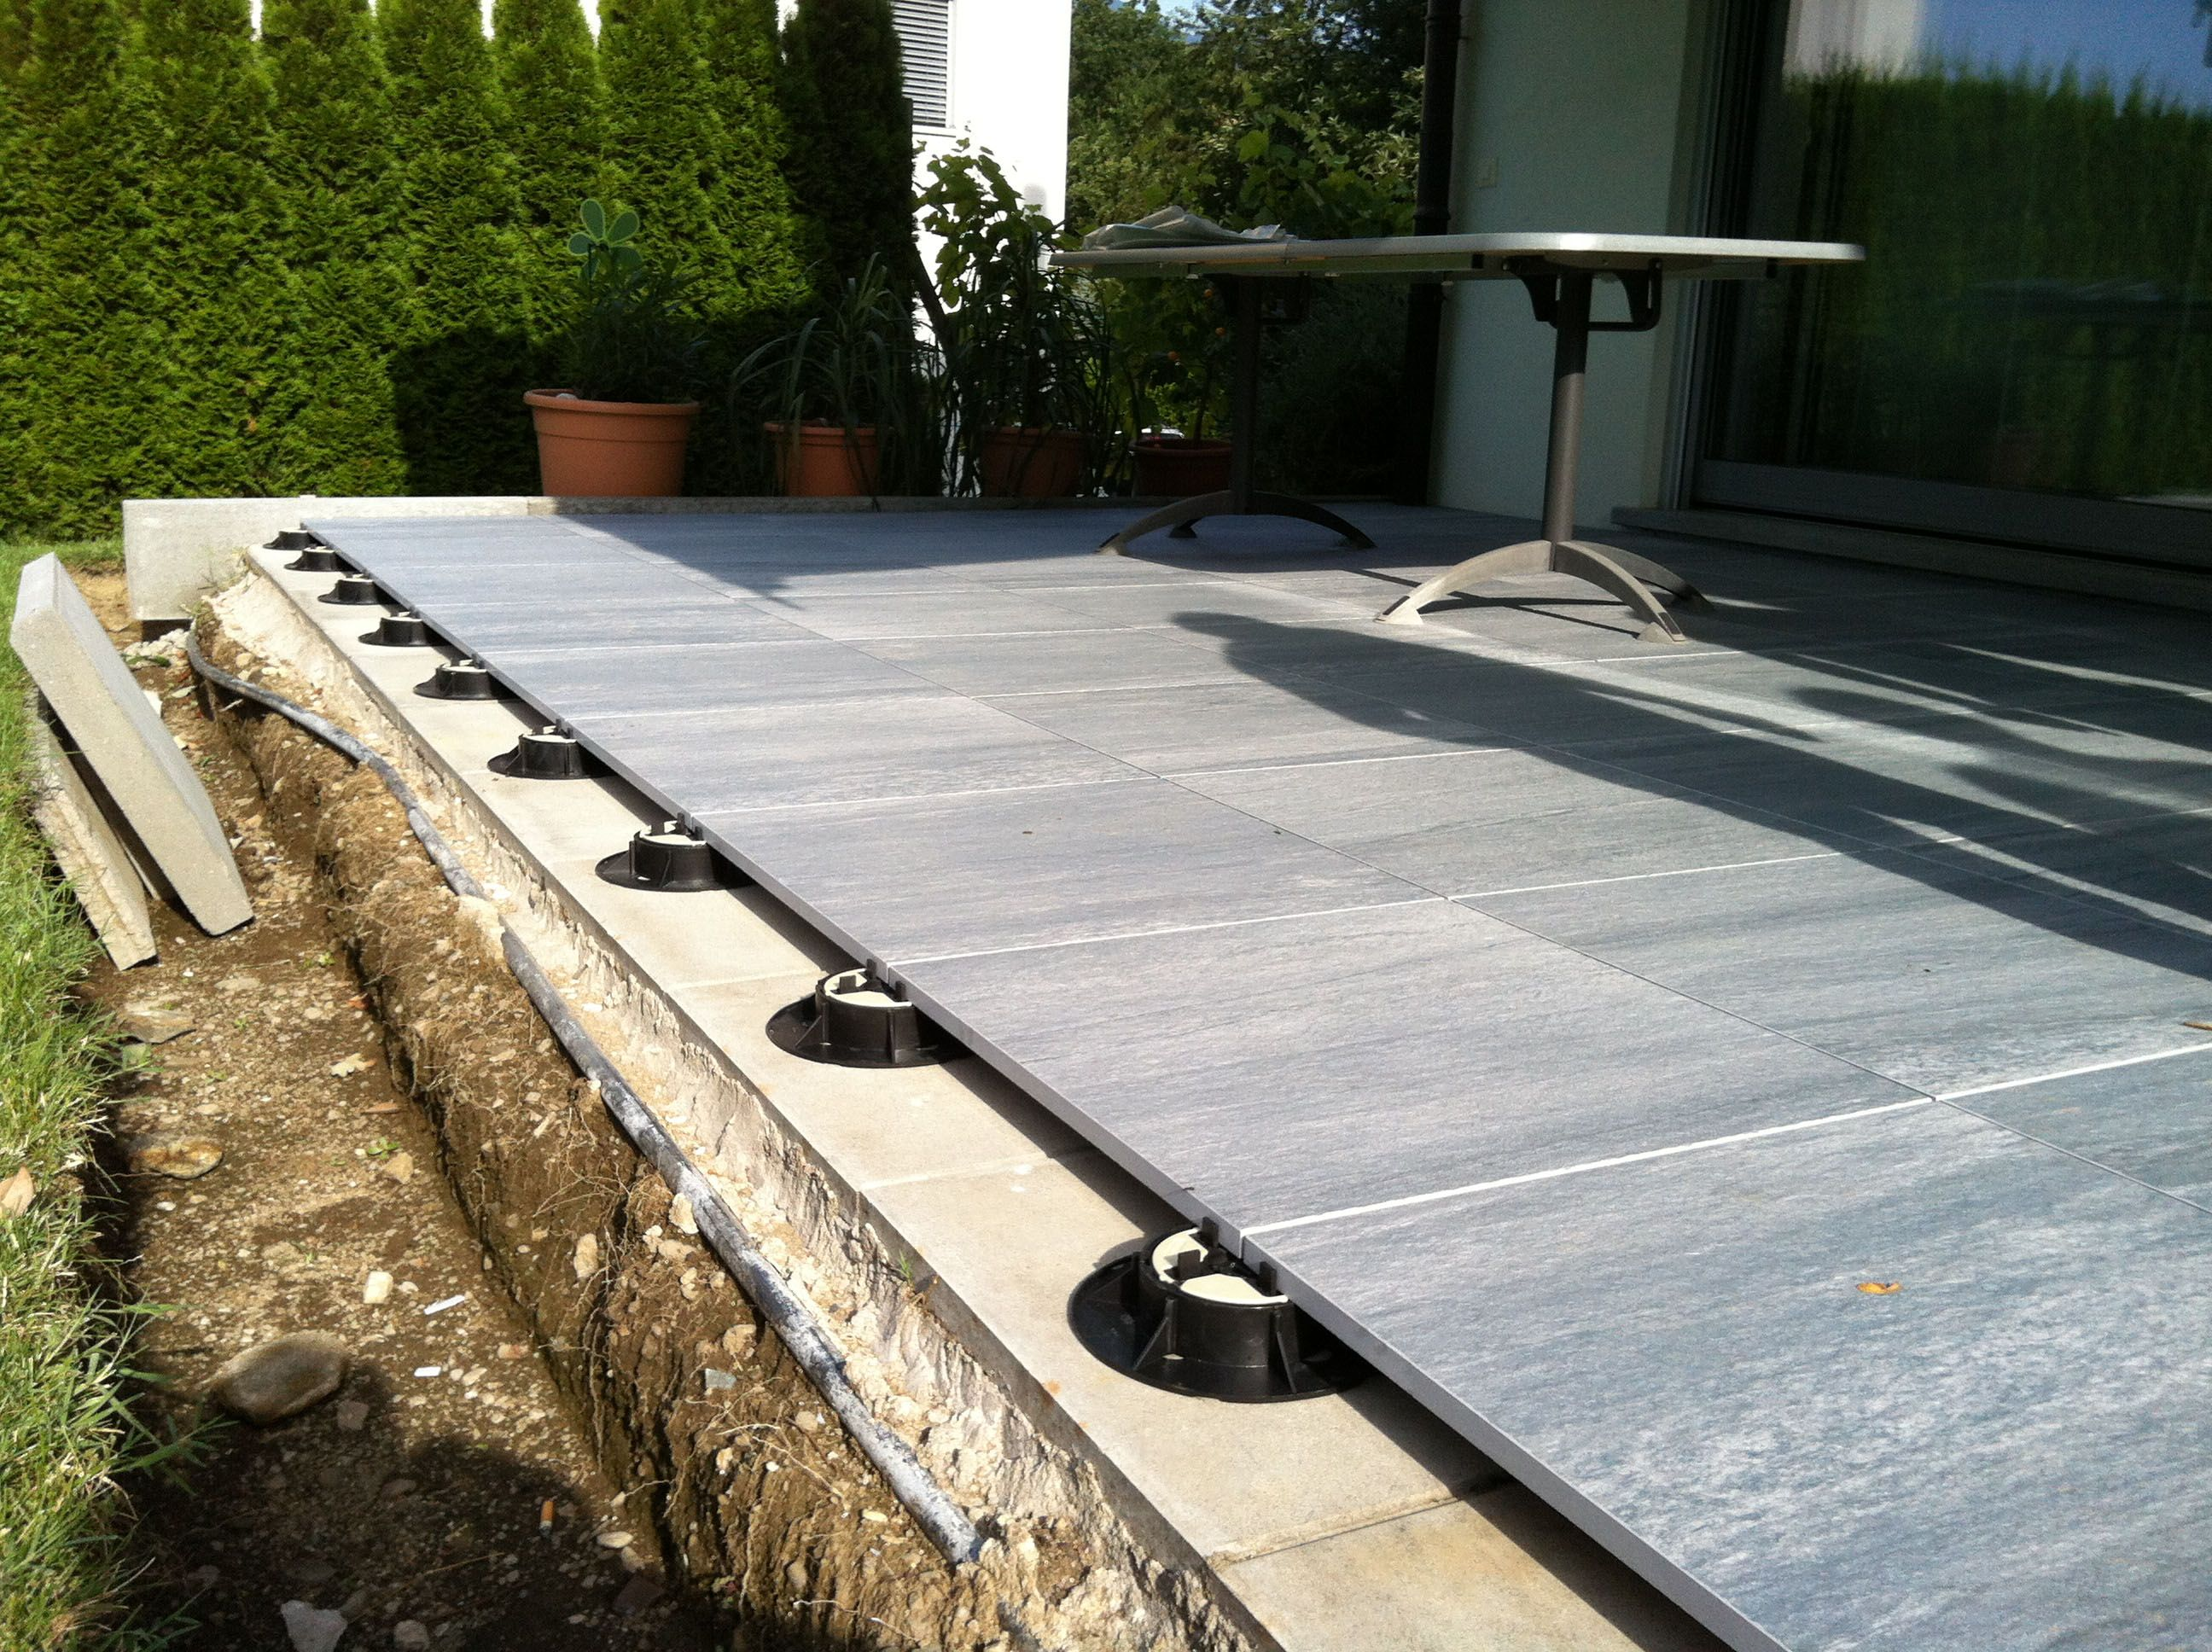 A Great Photo Showing An Outdoor Terrace Patio Laid On